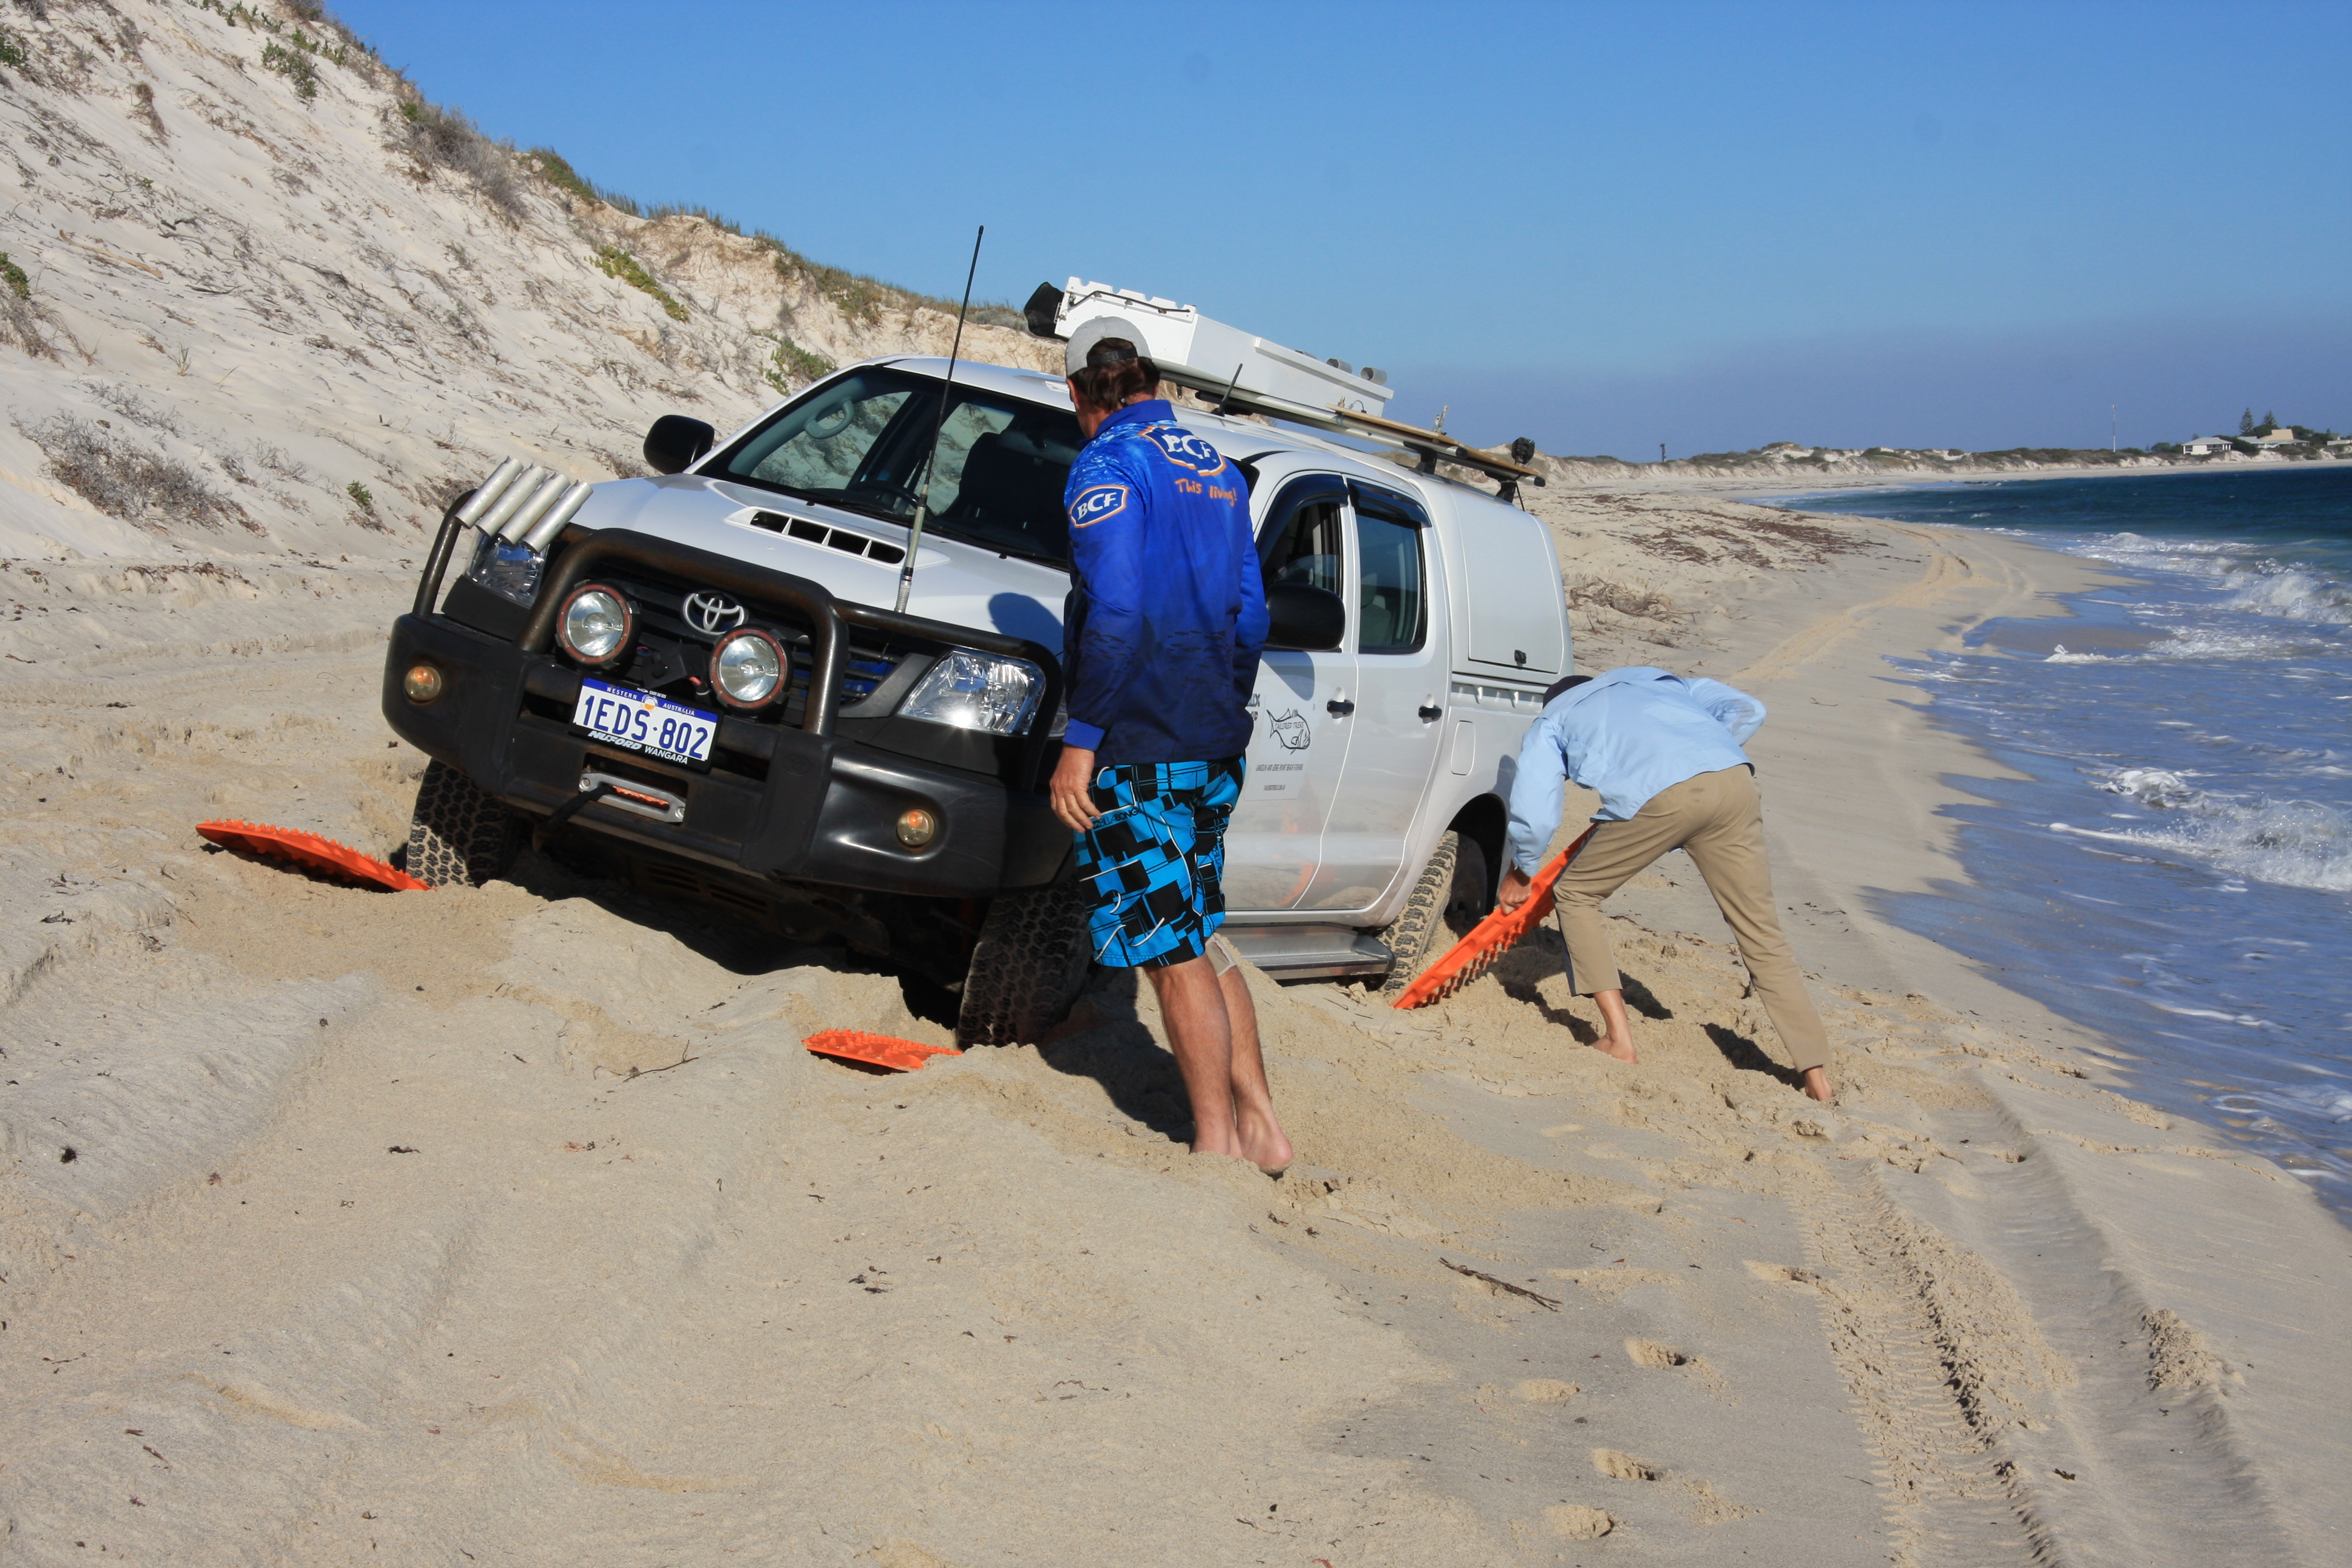 Beach 4WD tuition